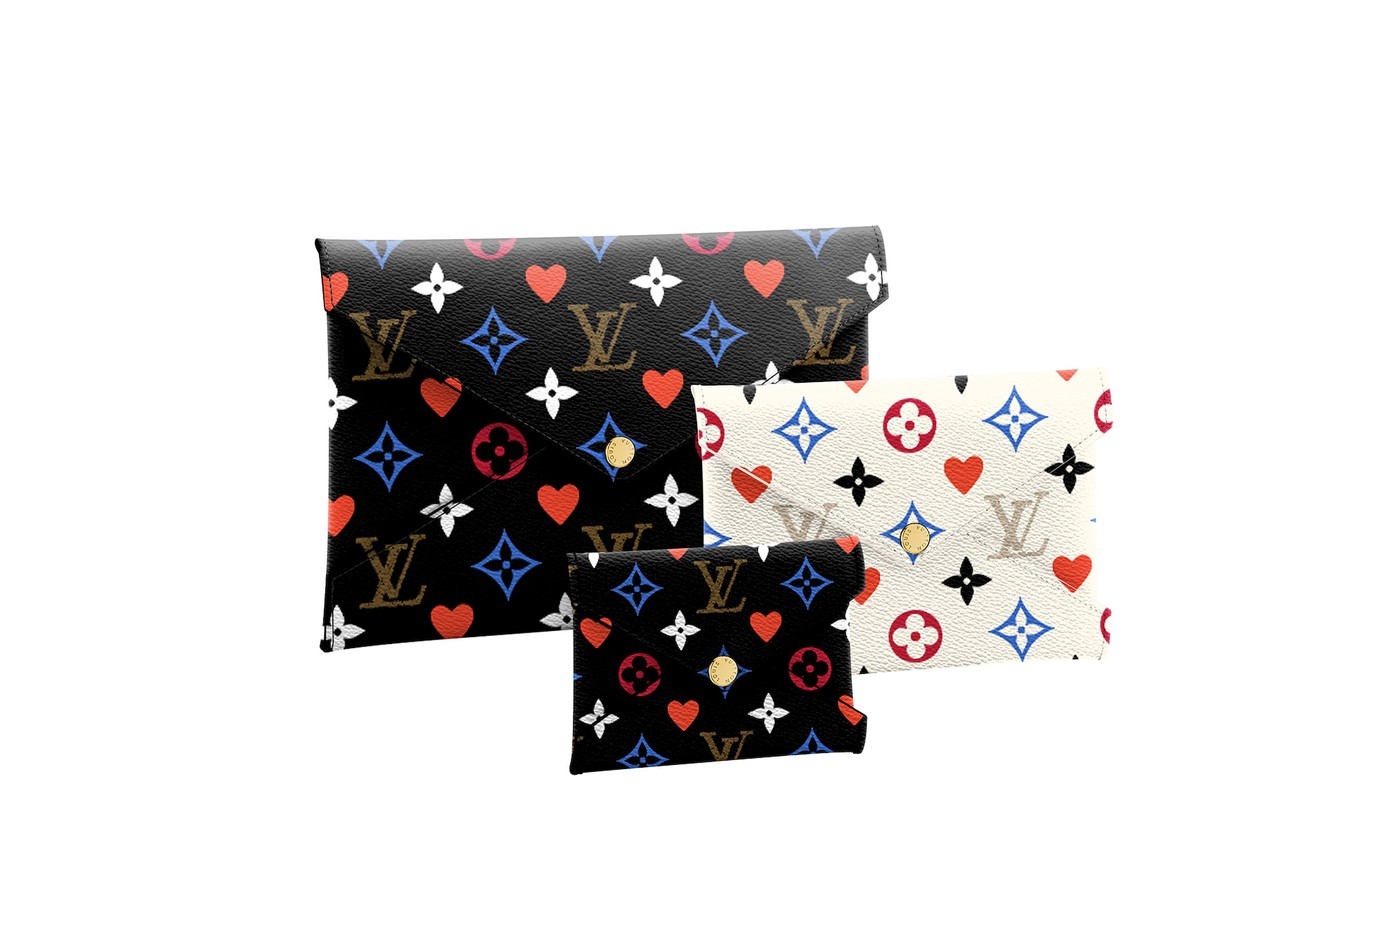 Louis Vuitton Cruise 2021 Pochette Kirigami